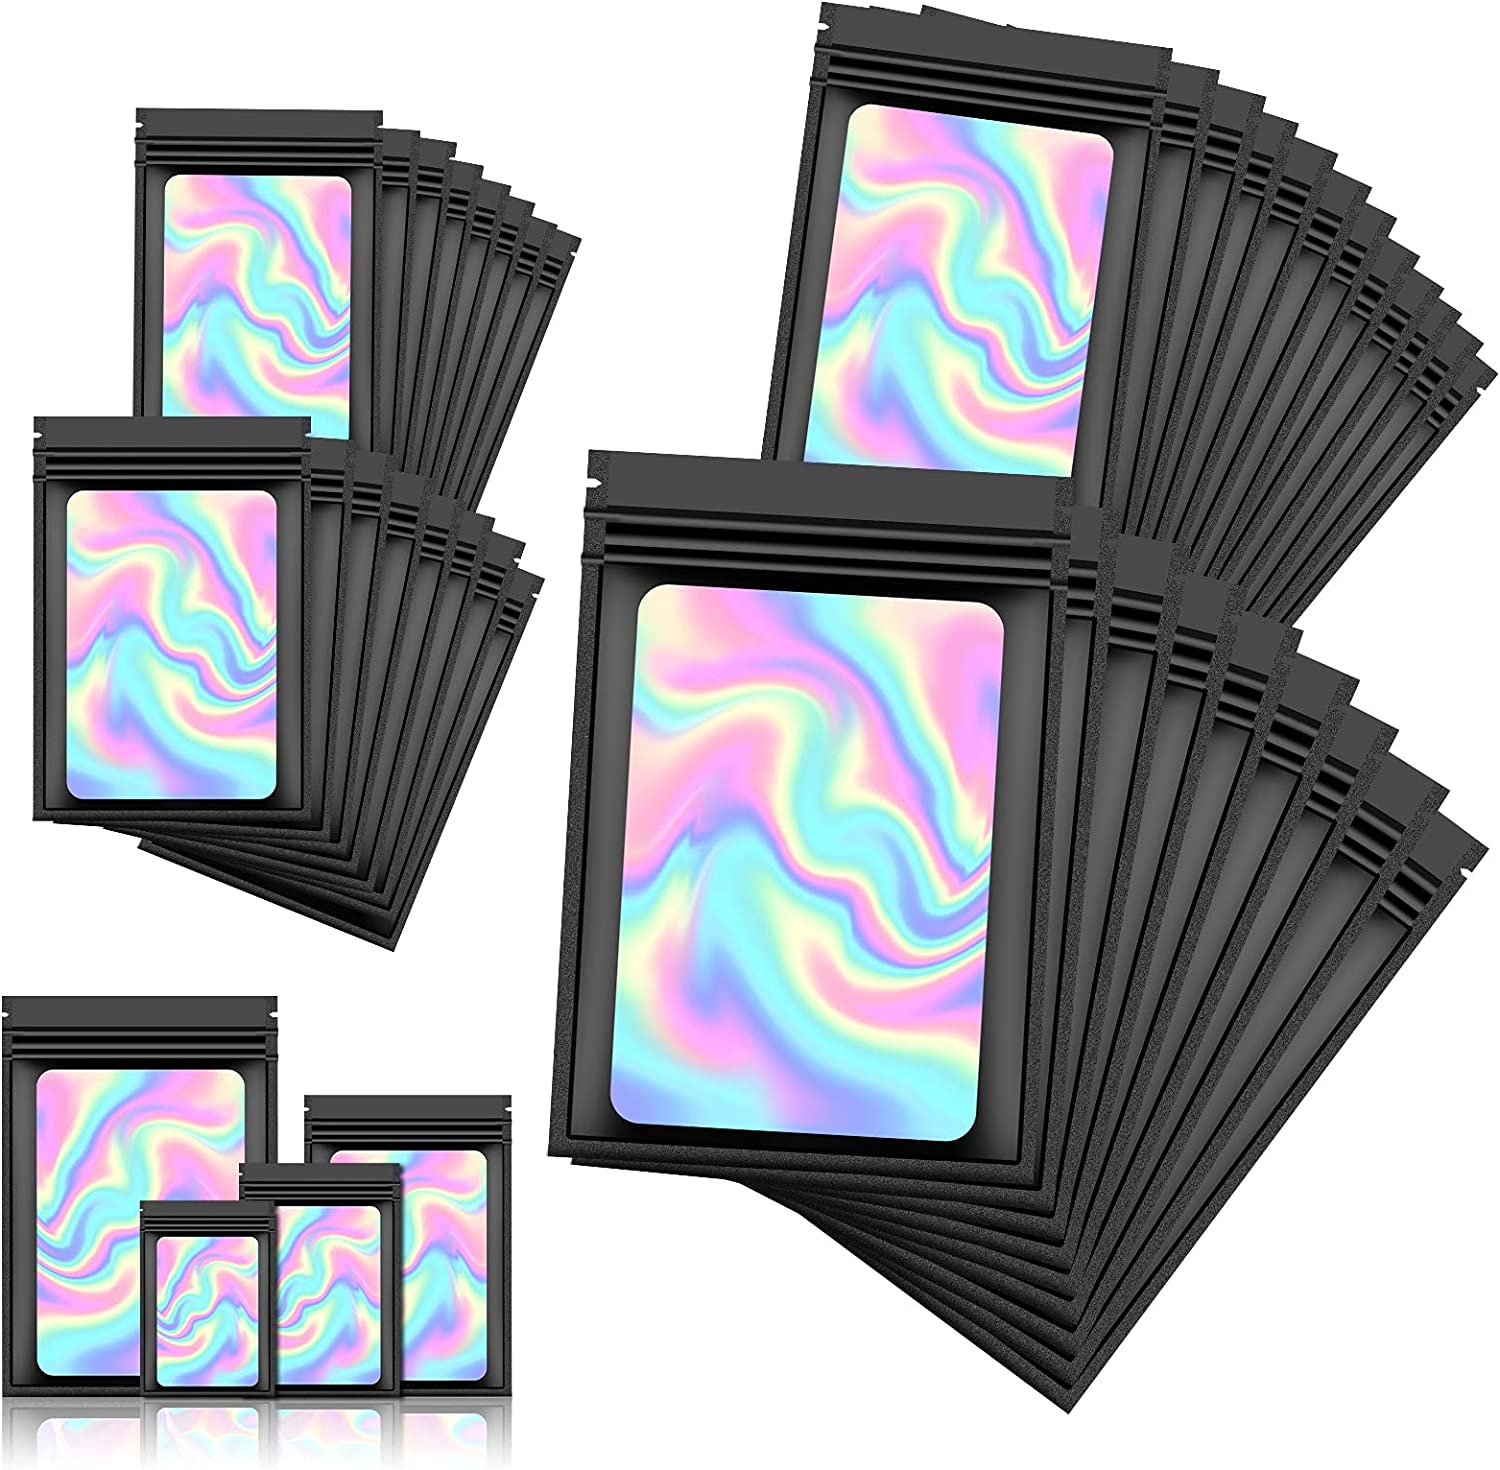 120 PCS Smell Proof Mylar Bags Resealable Odor Proof Bags Holographic Packaging Pouch Bag with Clear Window for Food Storage Eyelash Jewelry Candy Electronics Storage, 4 Sizes (Black) (BLACK)